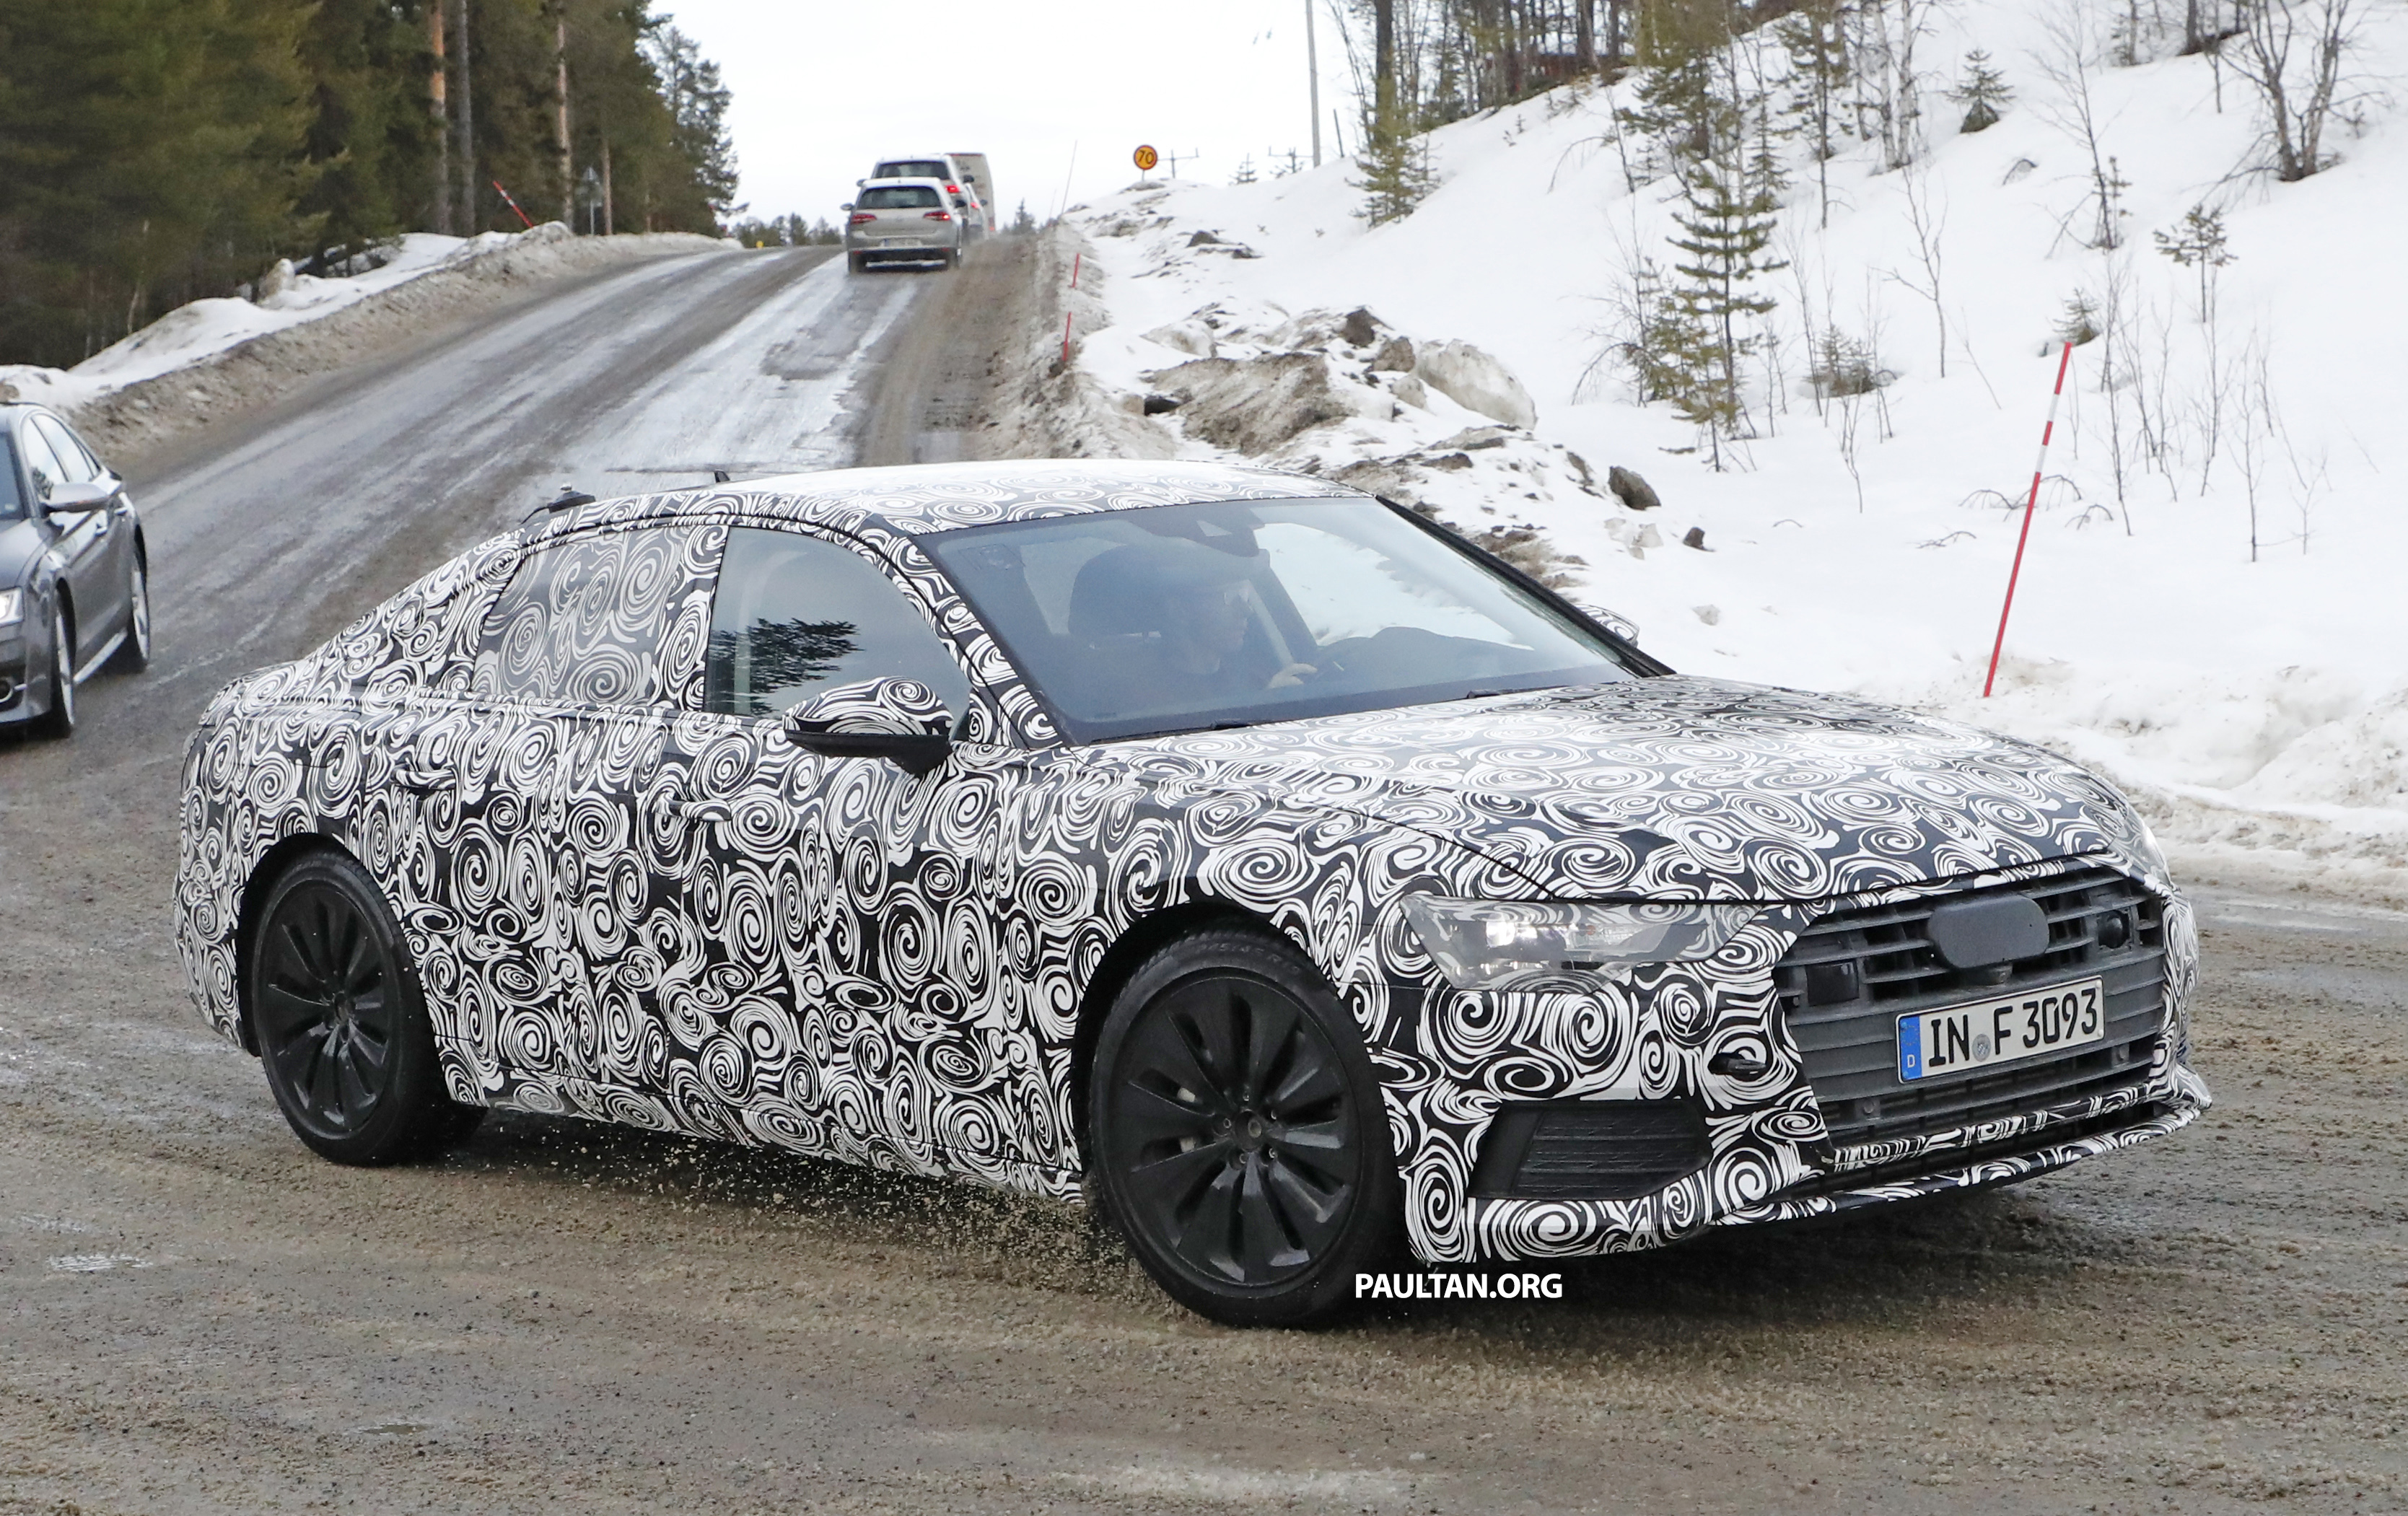 SPYSHOTS: 2018 Audi A6 shows off its new curves Image 615123